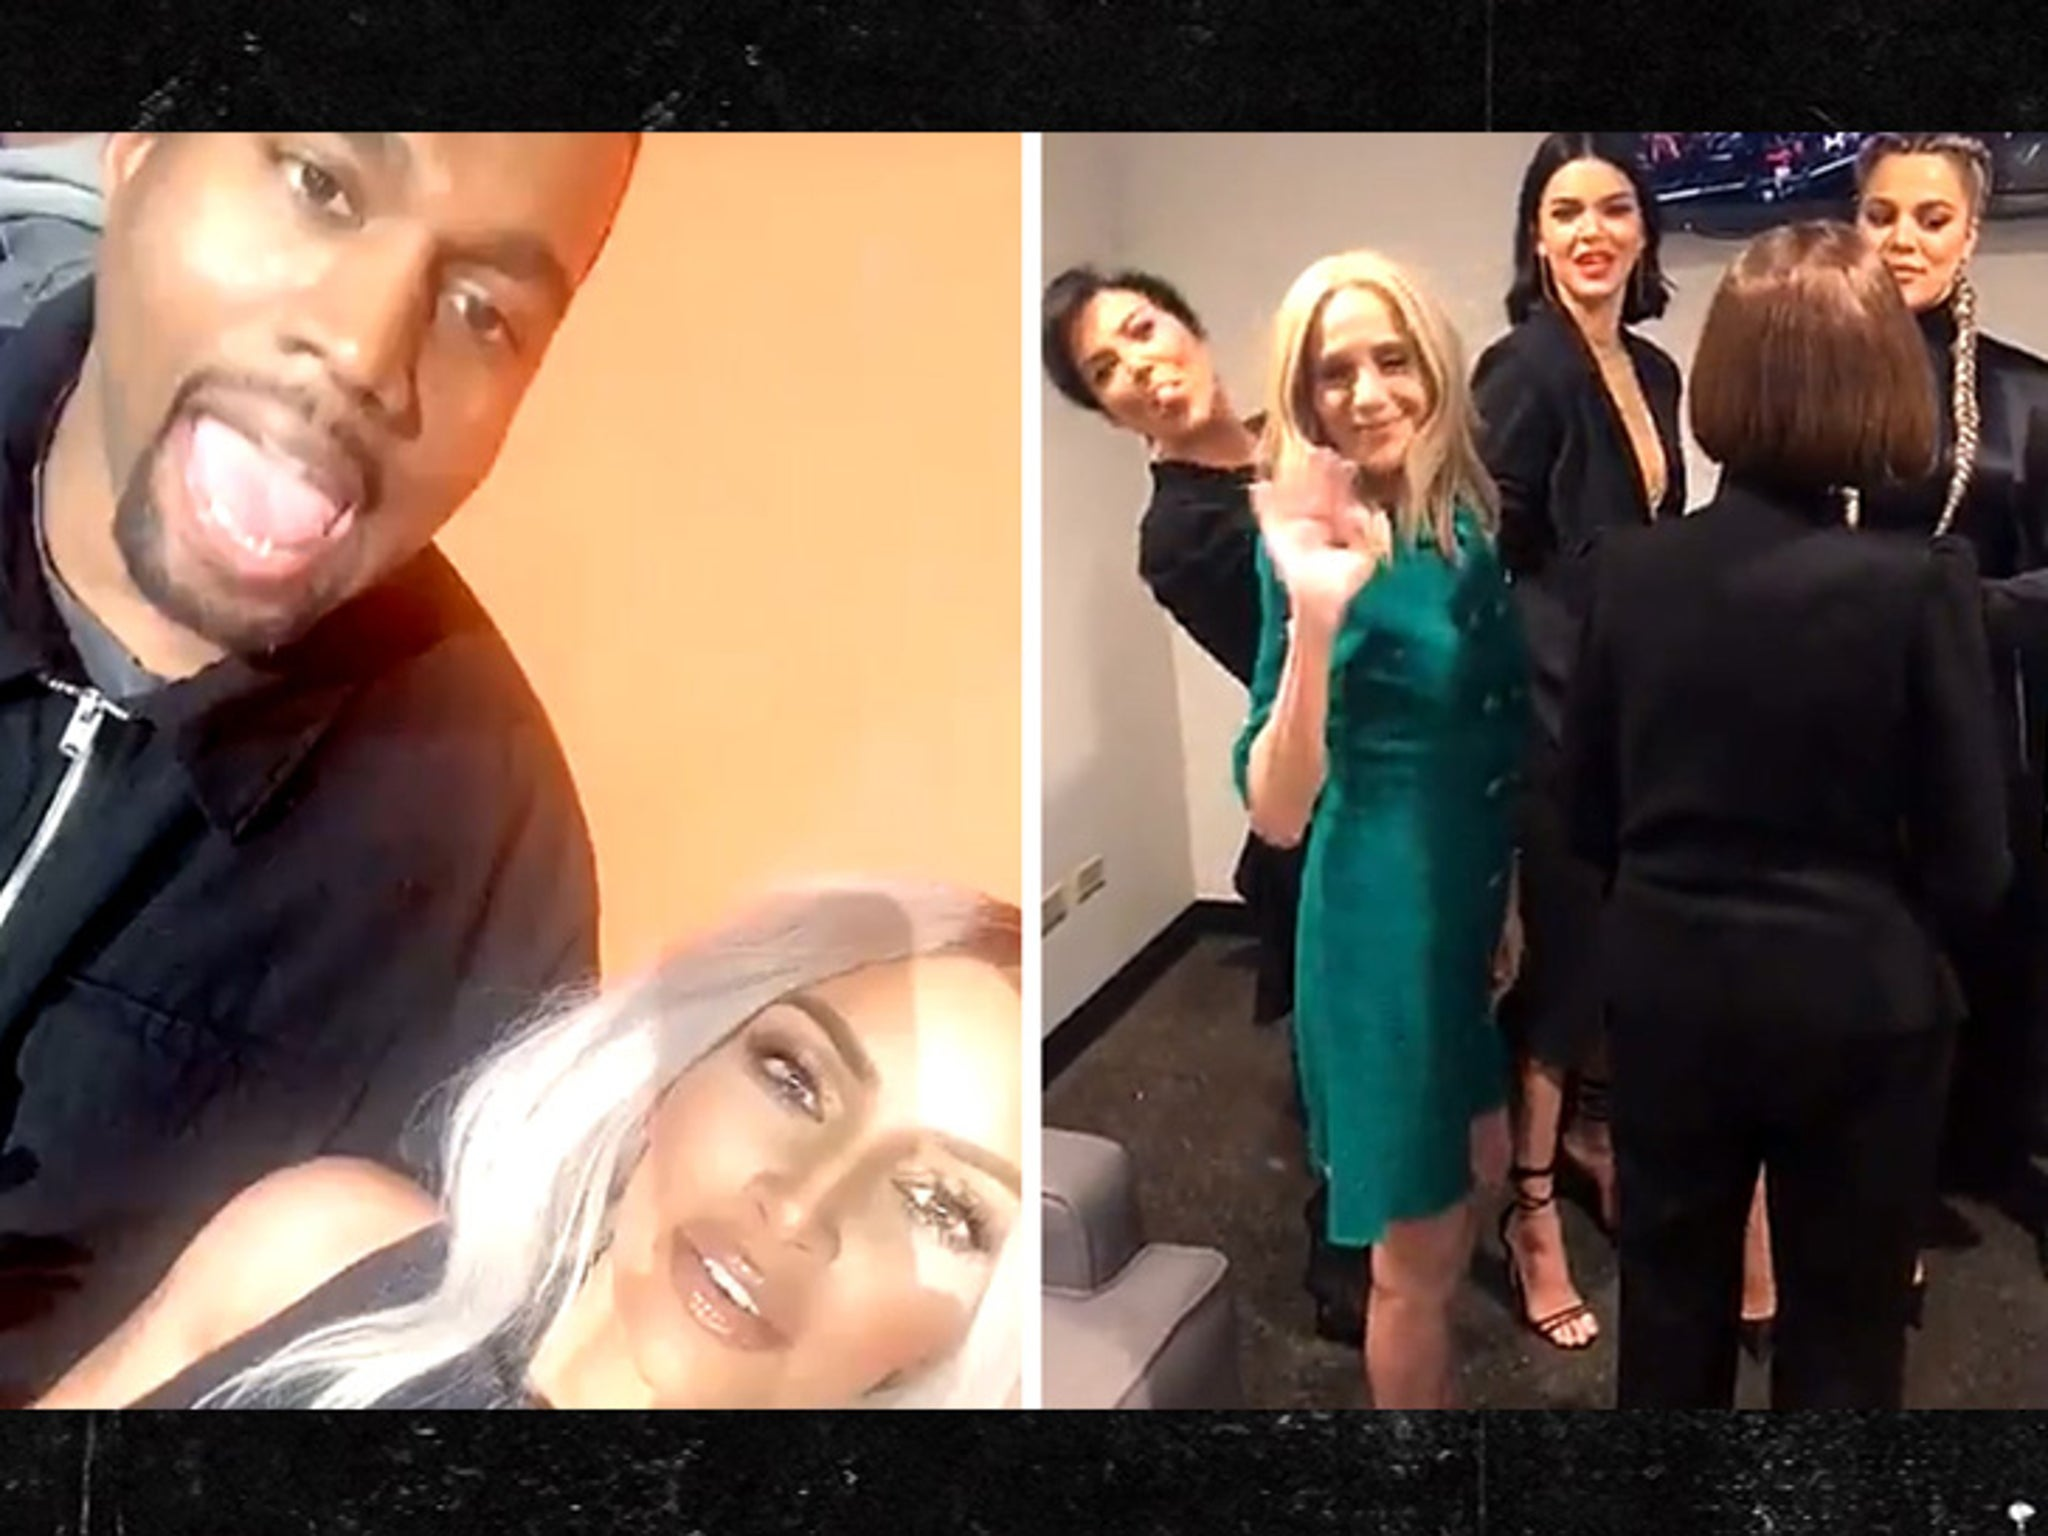 388ddca6238a5 Kim Kardashian and Kanye West Up Against Kendall, Khloe and Kris for  'Family Feud' Taping